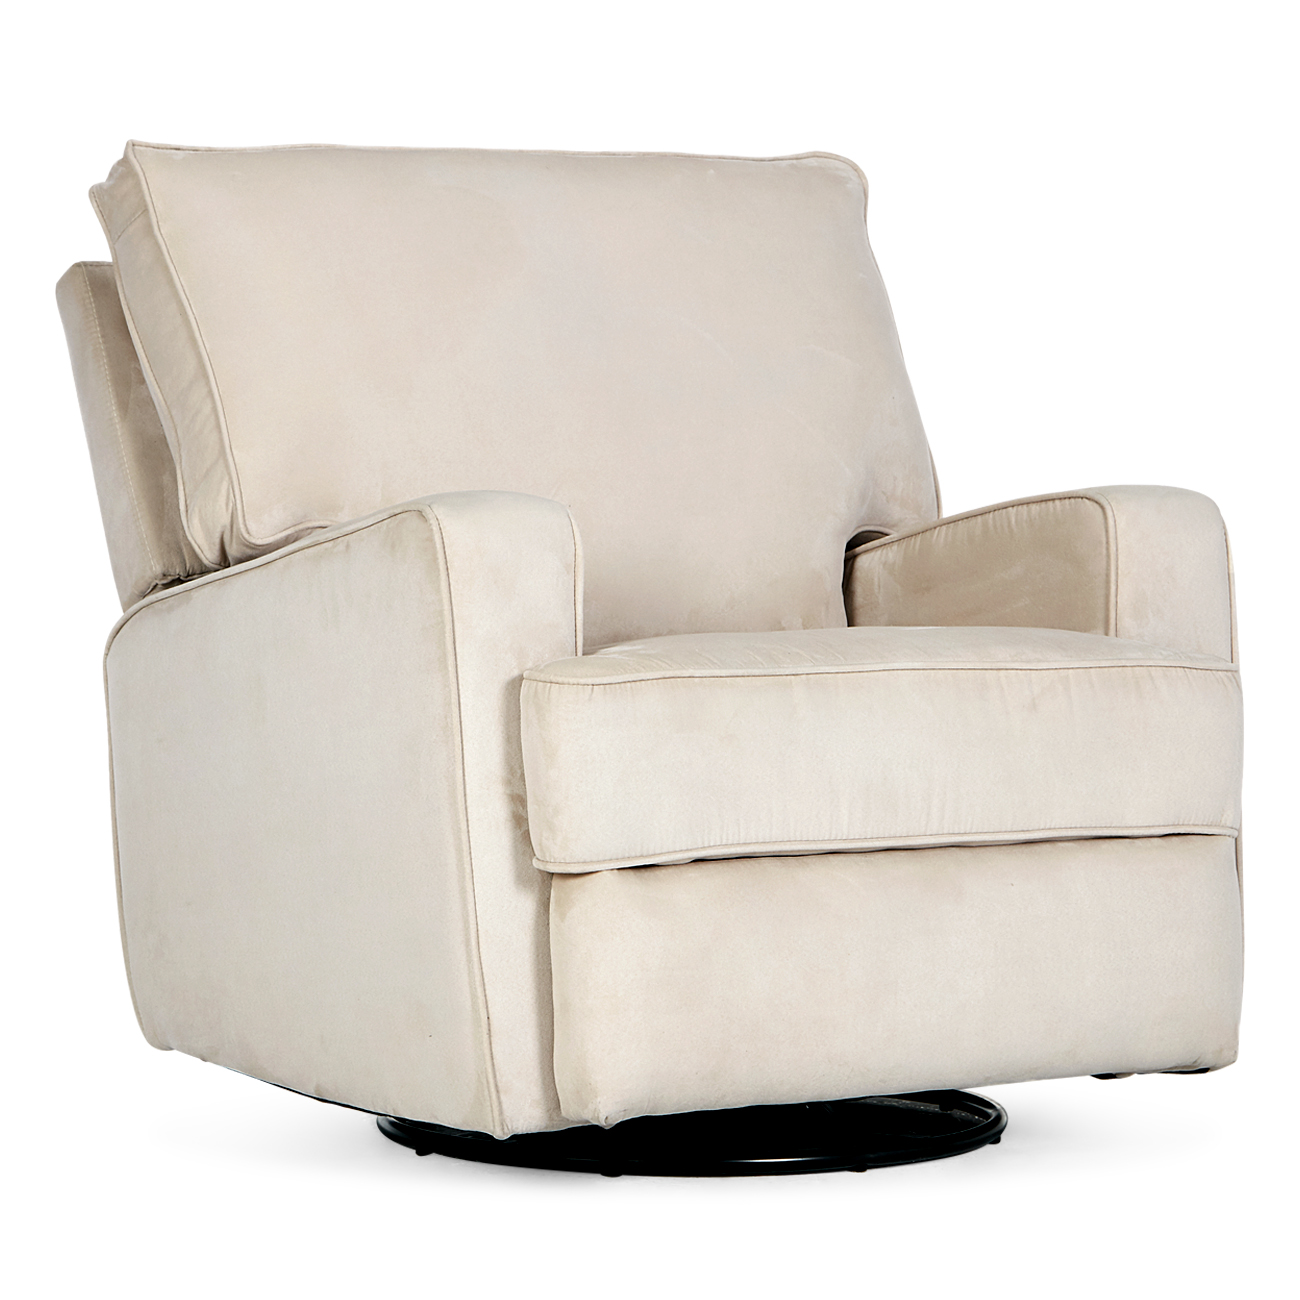 Details About Recliner Sofa Swivel Chair Linen Ergonomic Padded Seat Lounge Living Room Beige